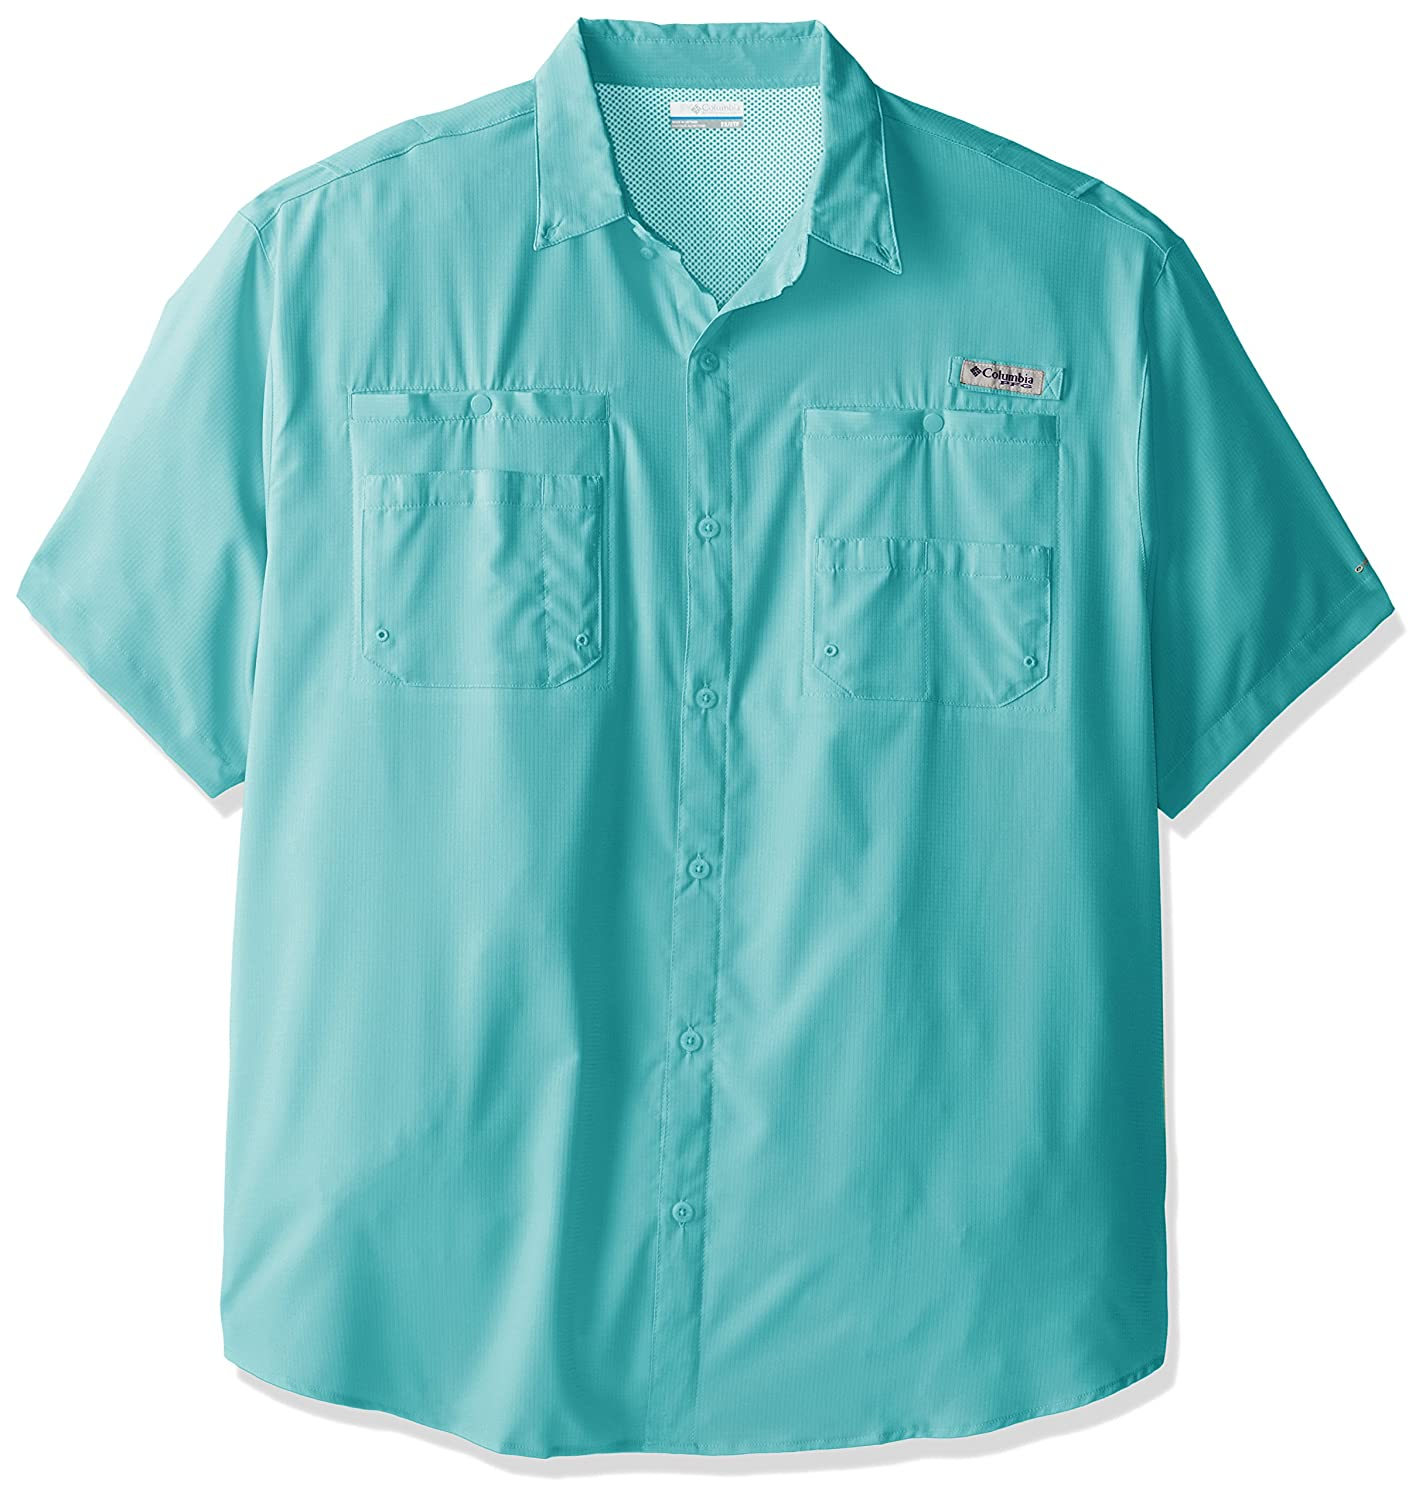 d8fe2be6283 Our lightest weight fishing shirt is designed to offer cool comfort and  functionality over the long haul. Quick drying fabric wicks moisture, ...